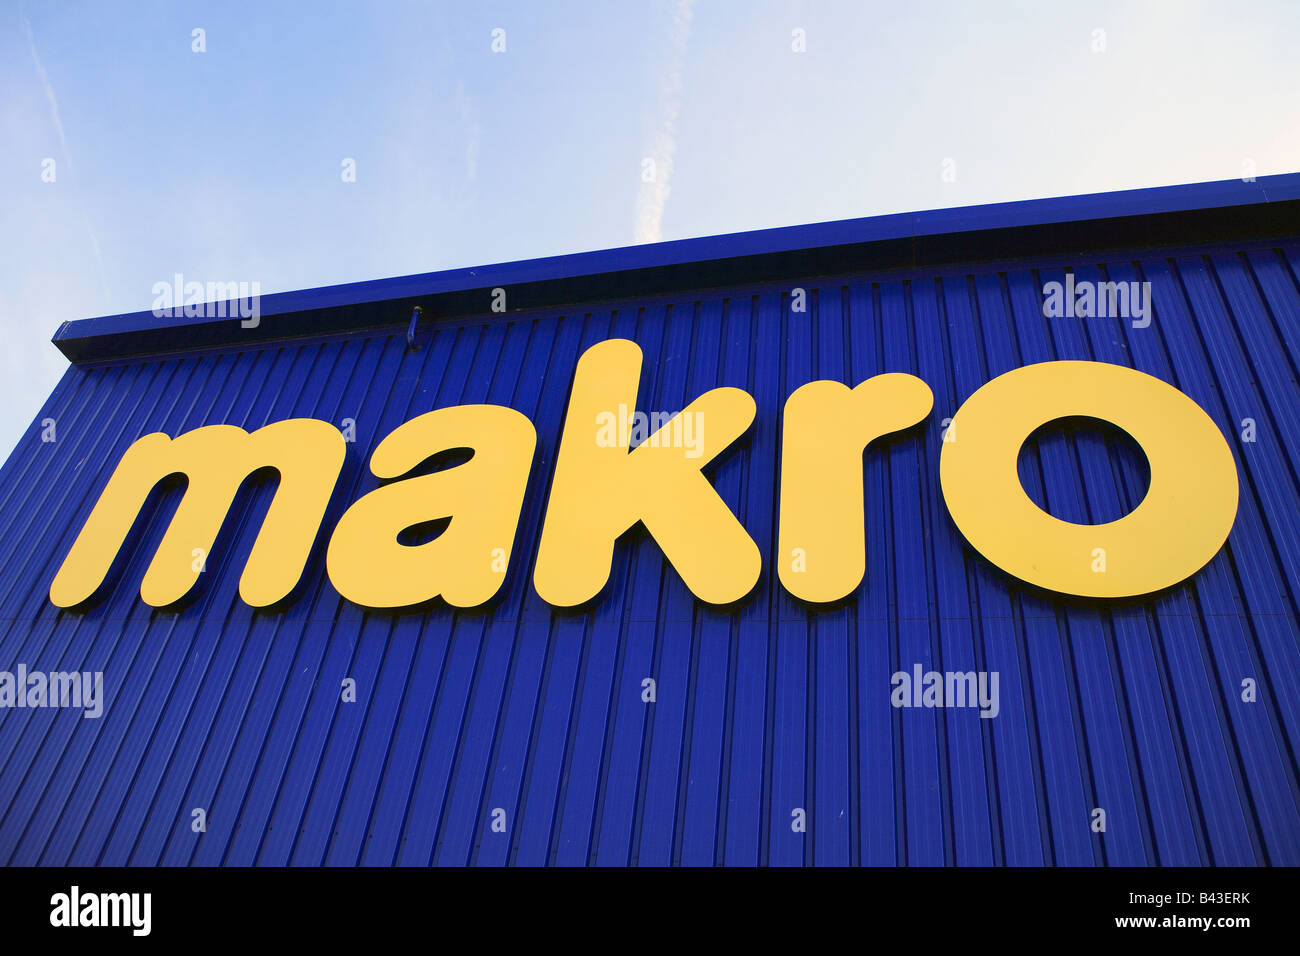 Makro store stock photos makro store stock images alamy united kingdom essex rayleigh makro supertore stock image colourmoves